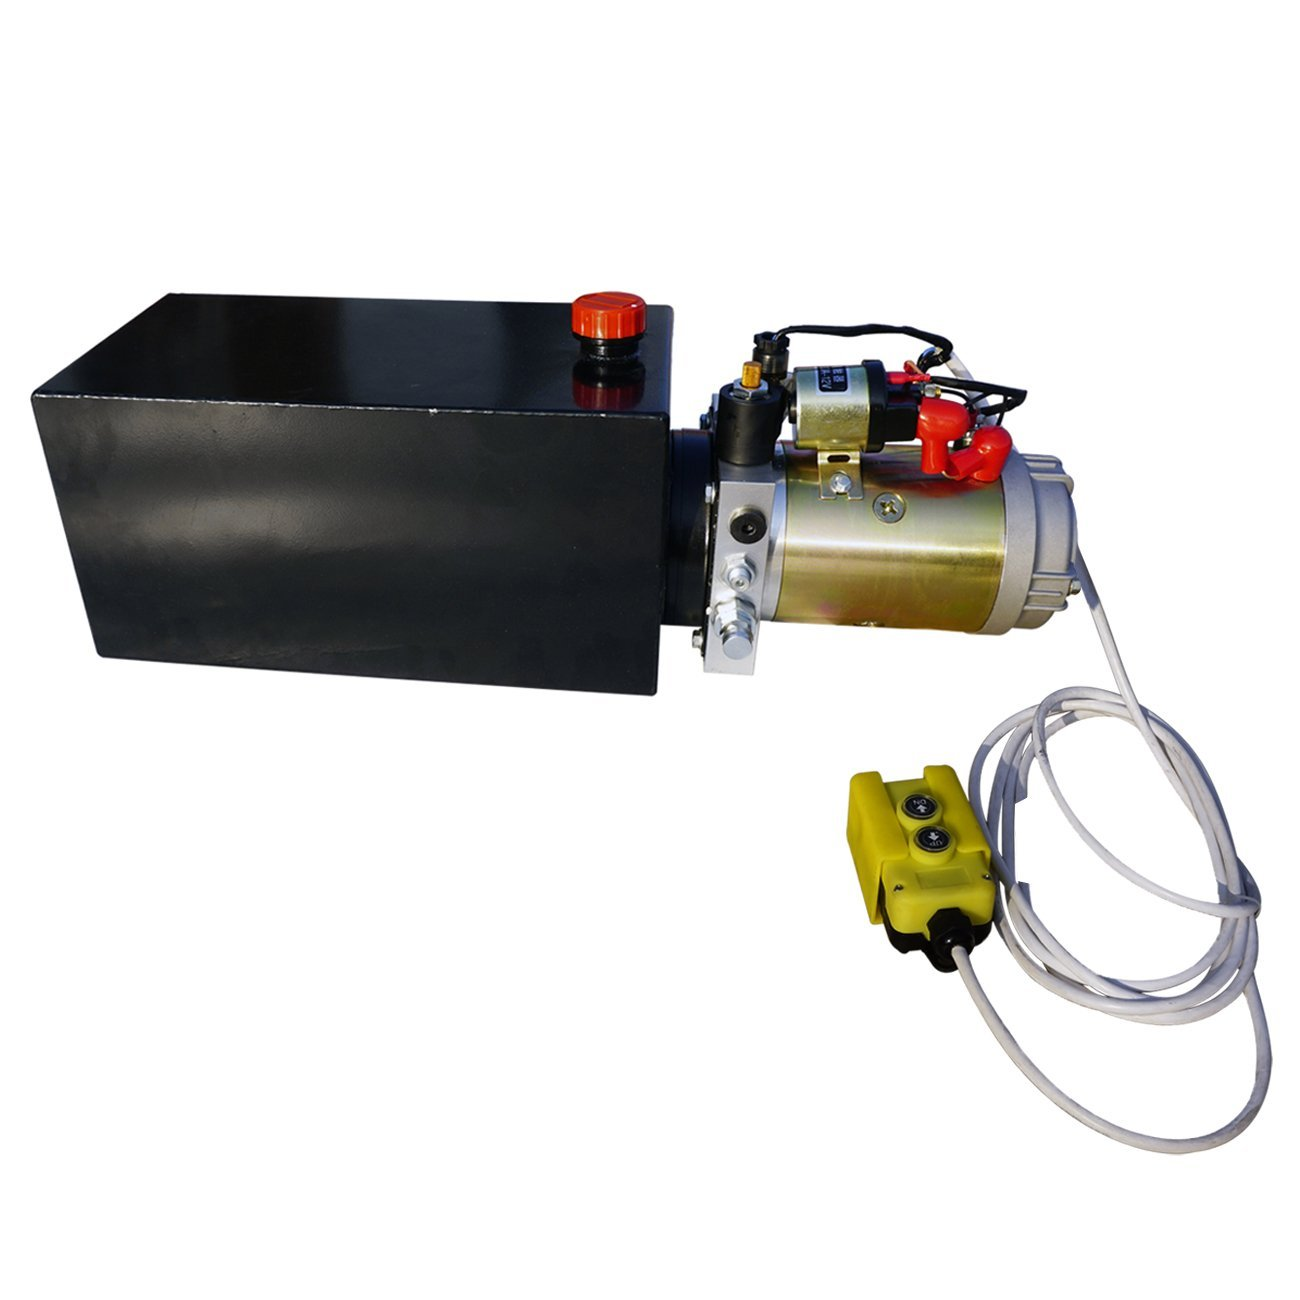 Fisters Durable High Quality Electric Metal Reservoir 12V Hydraulic Pump Power Supply Unit Pack Single Acting Remotely Controlled Dump Trailer Fit for Lift Unloading(6 Quart Metal Tank) Fristers L12t160123YYDLDY6D-1